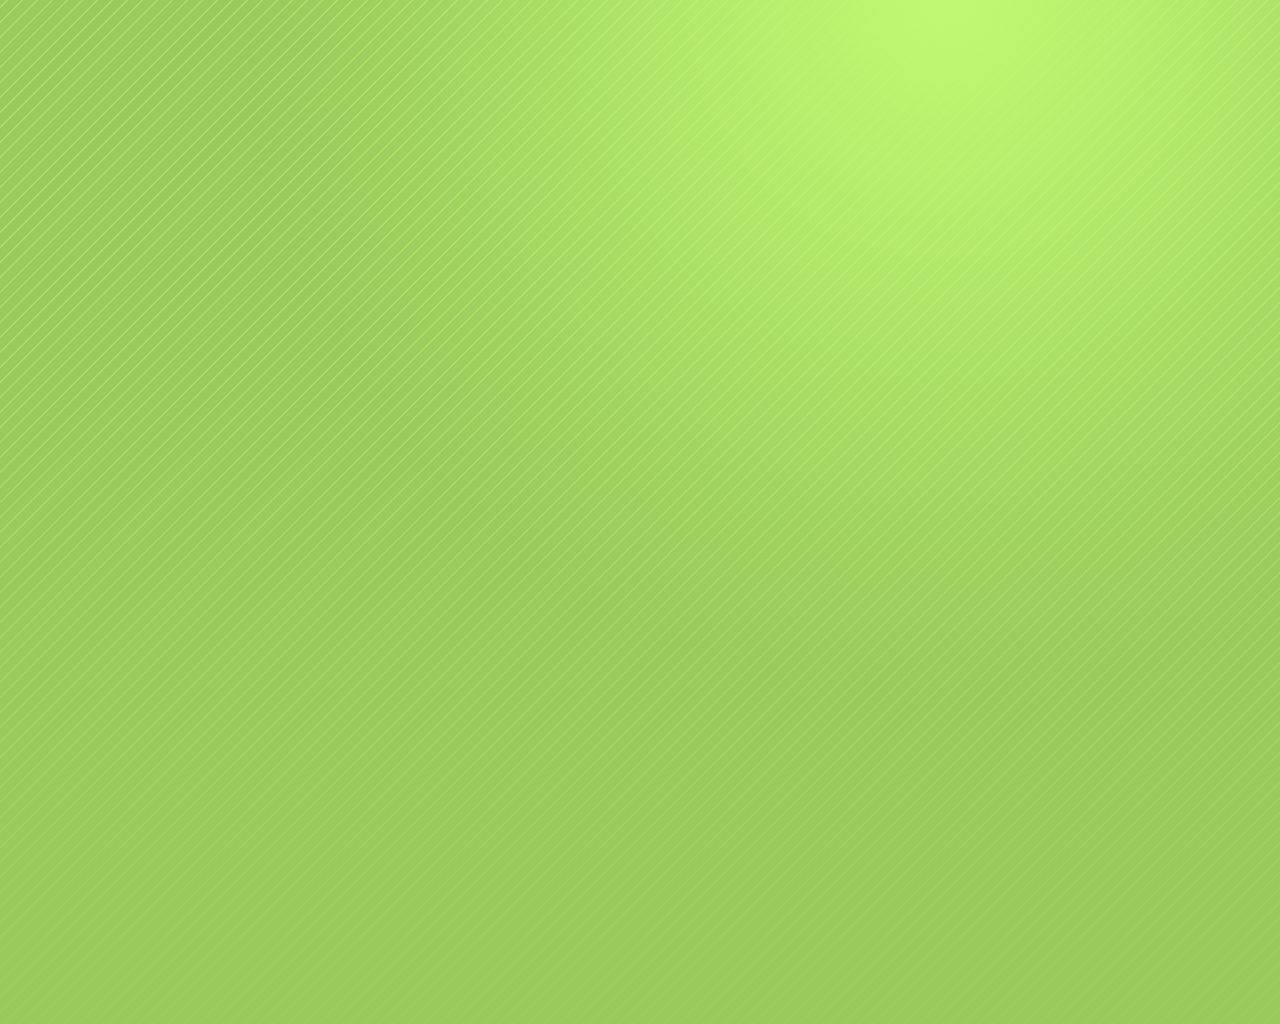 3d Image Live Wallpaper Android App Light Green Wallpapers Wallpaper Cave